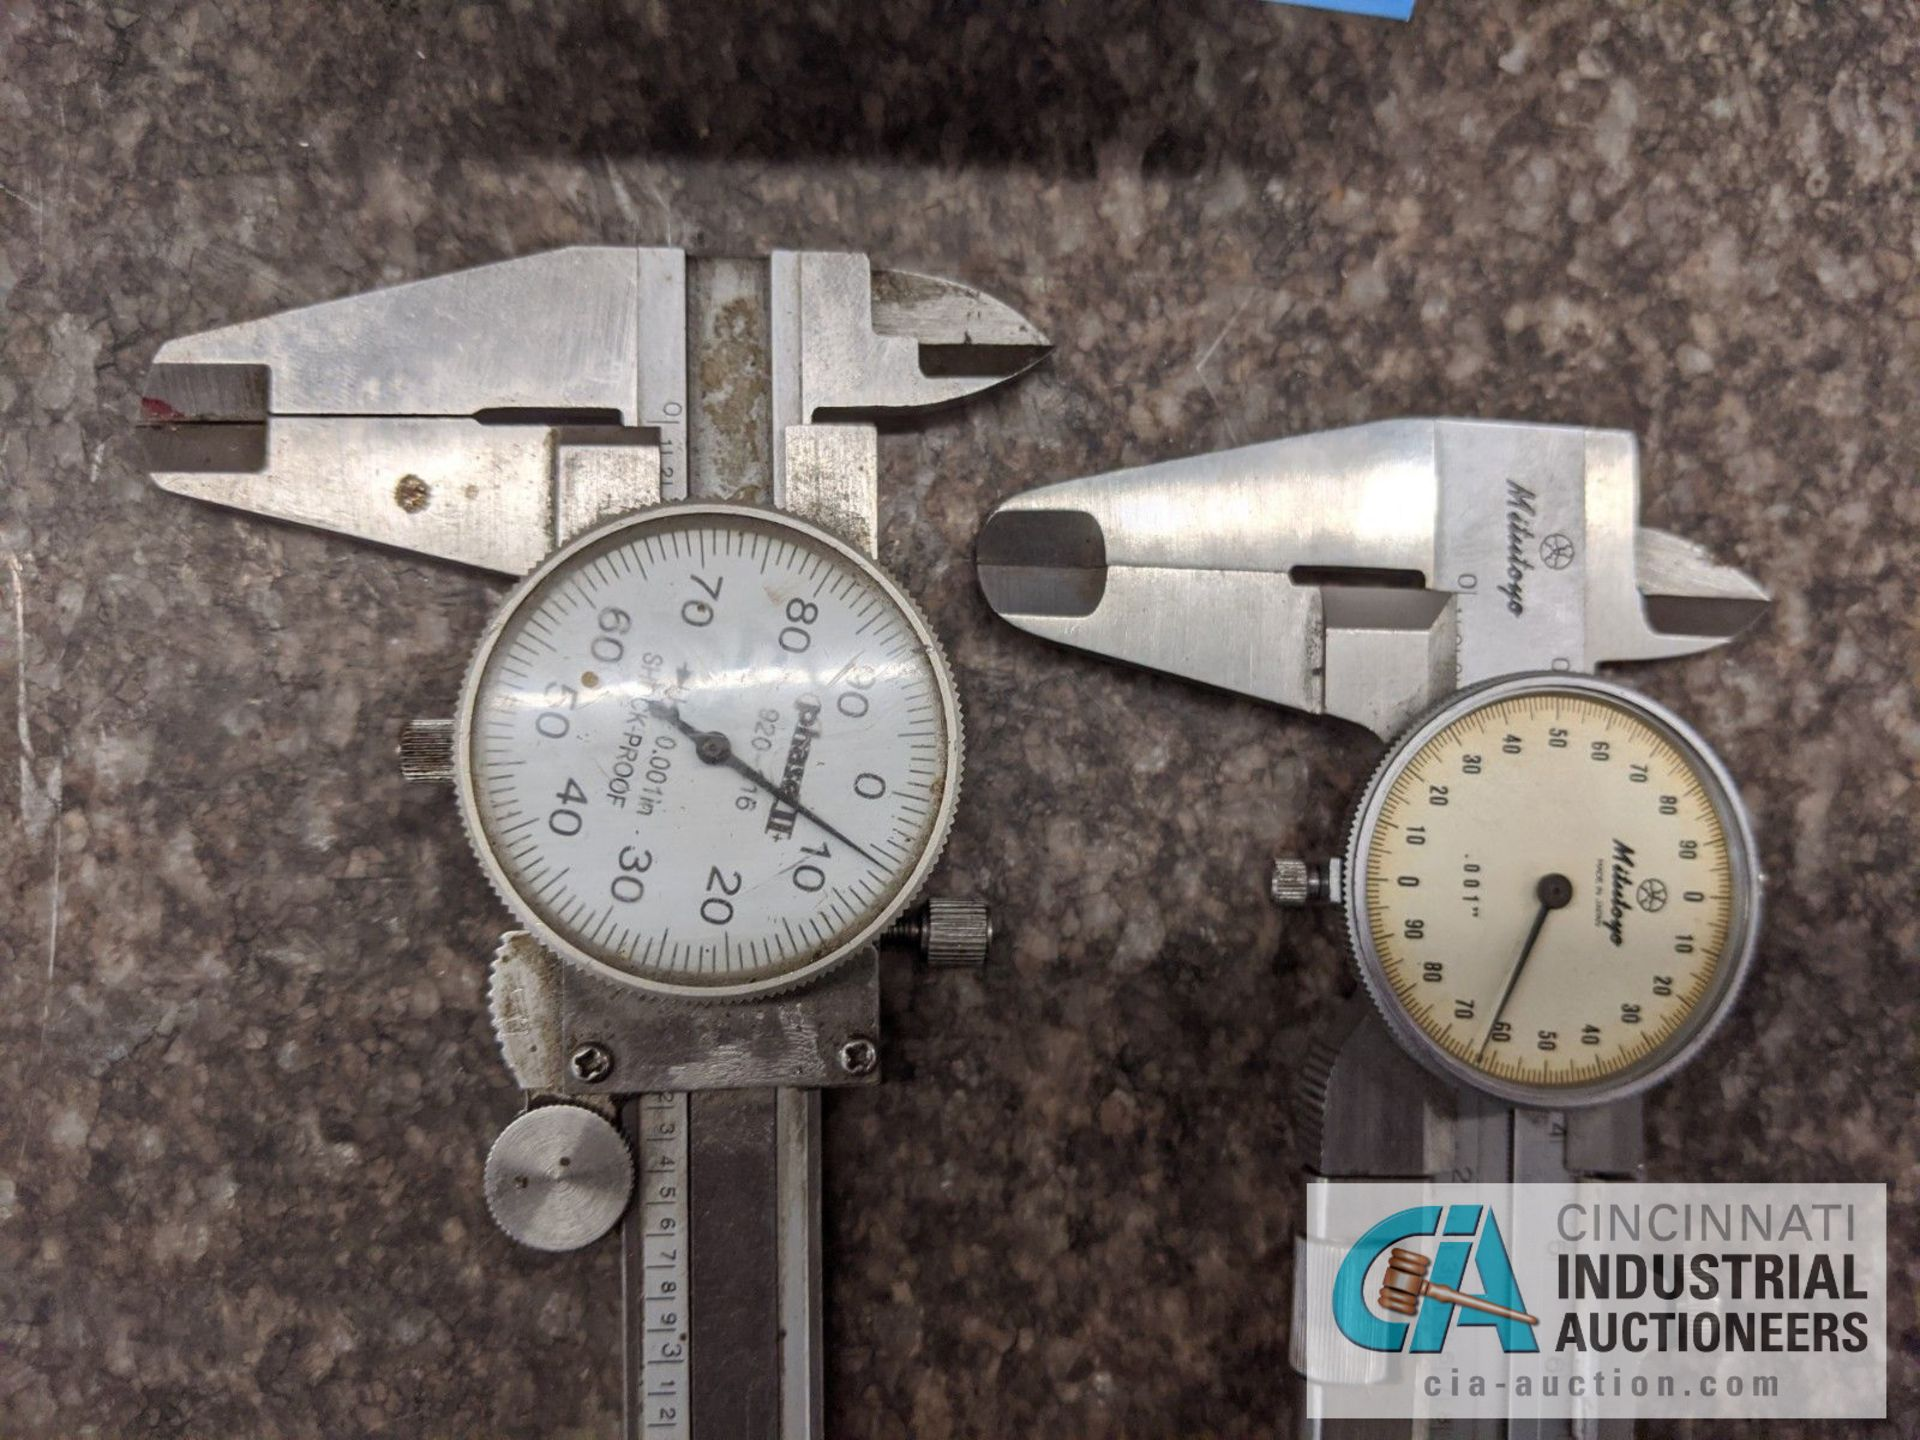 DIAL TYPE CALIPERS - Image 4 of 4